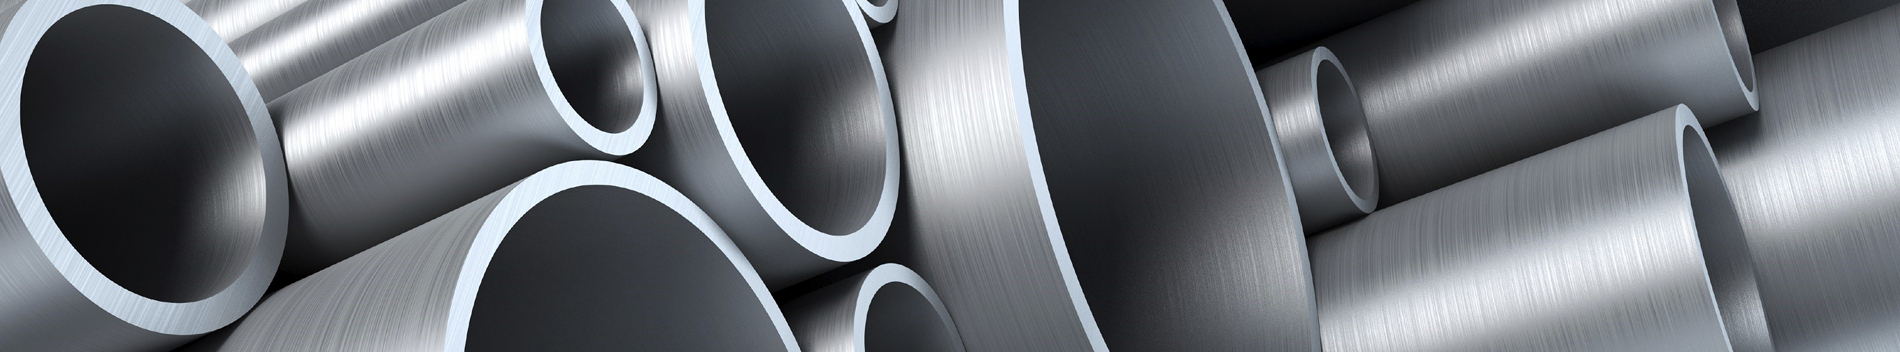 Nickel Alloys, Stainless steels & Titanium Facias